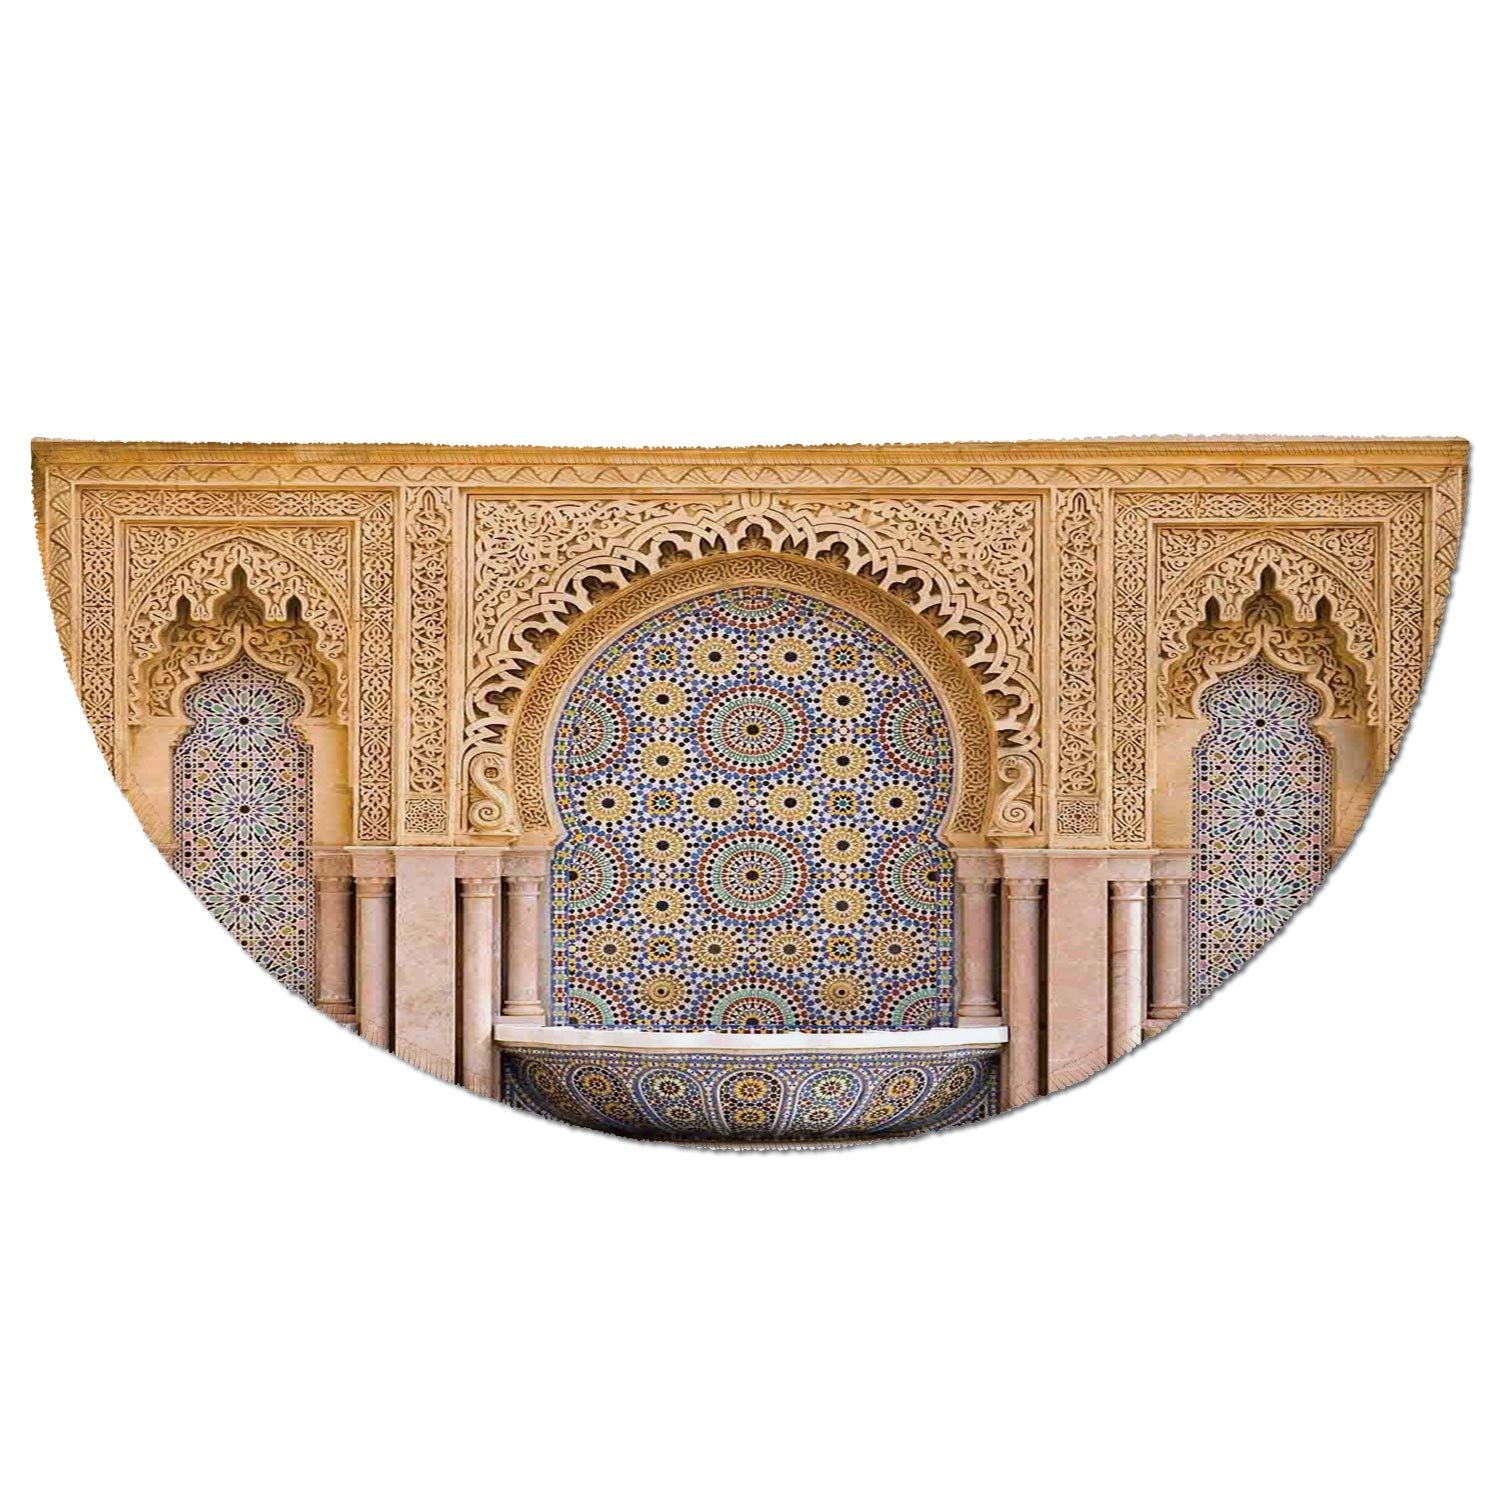 Half Round Door Mat Entrance Rug Floor Mats,Moroccan Decor,Typical Moroccan Tiled Fountain in the City of Rabat Near the Hassan Tower,Garage Entry Carpet Decor for House Patio Grass Water